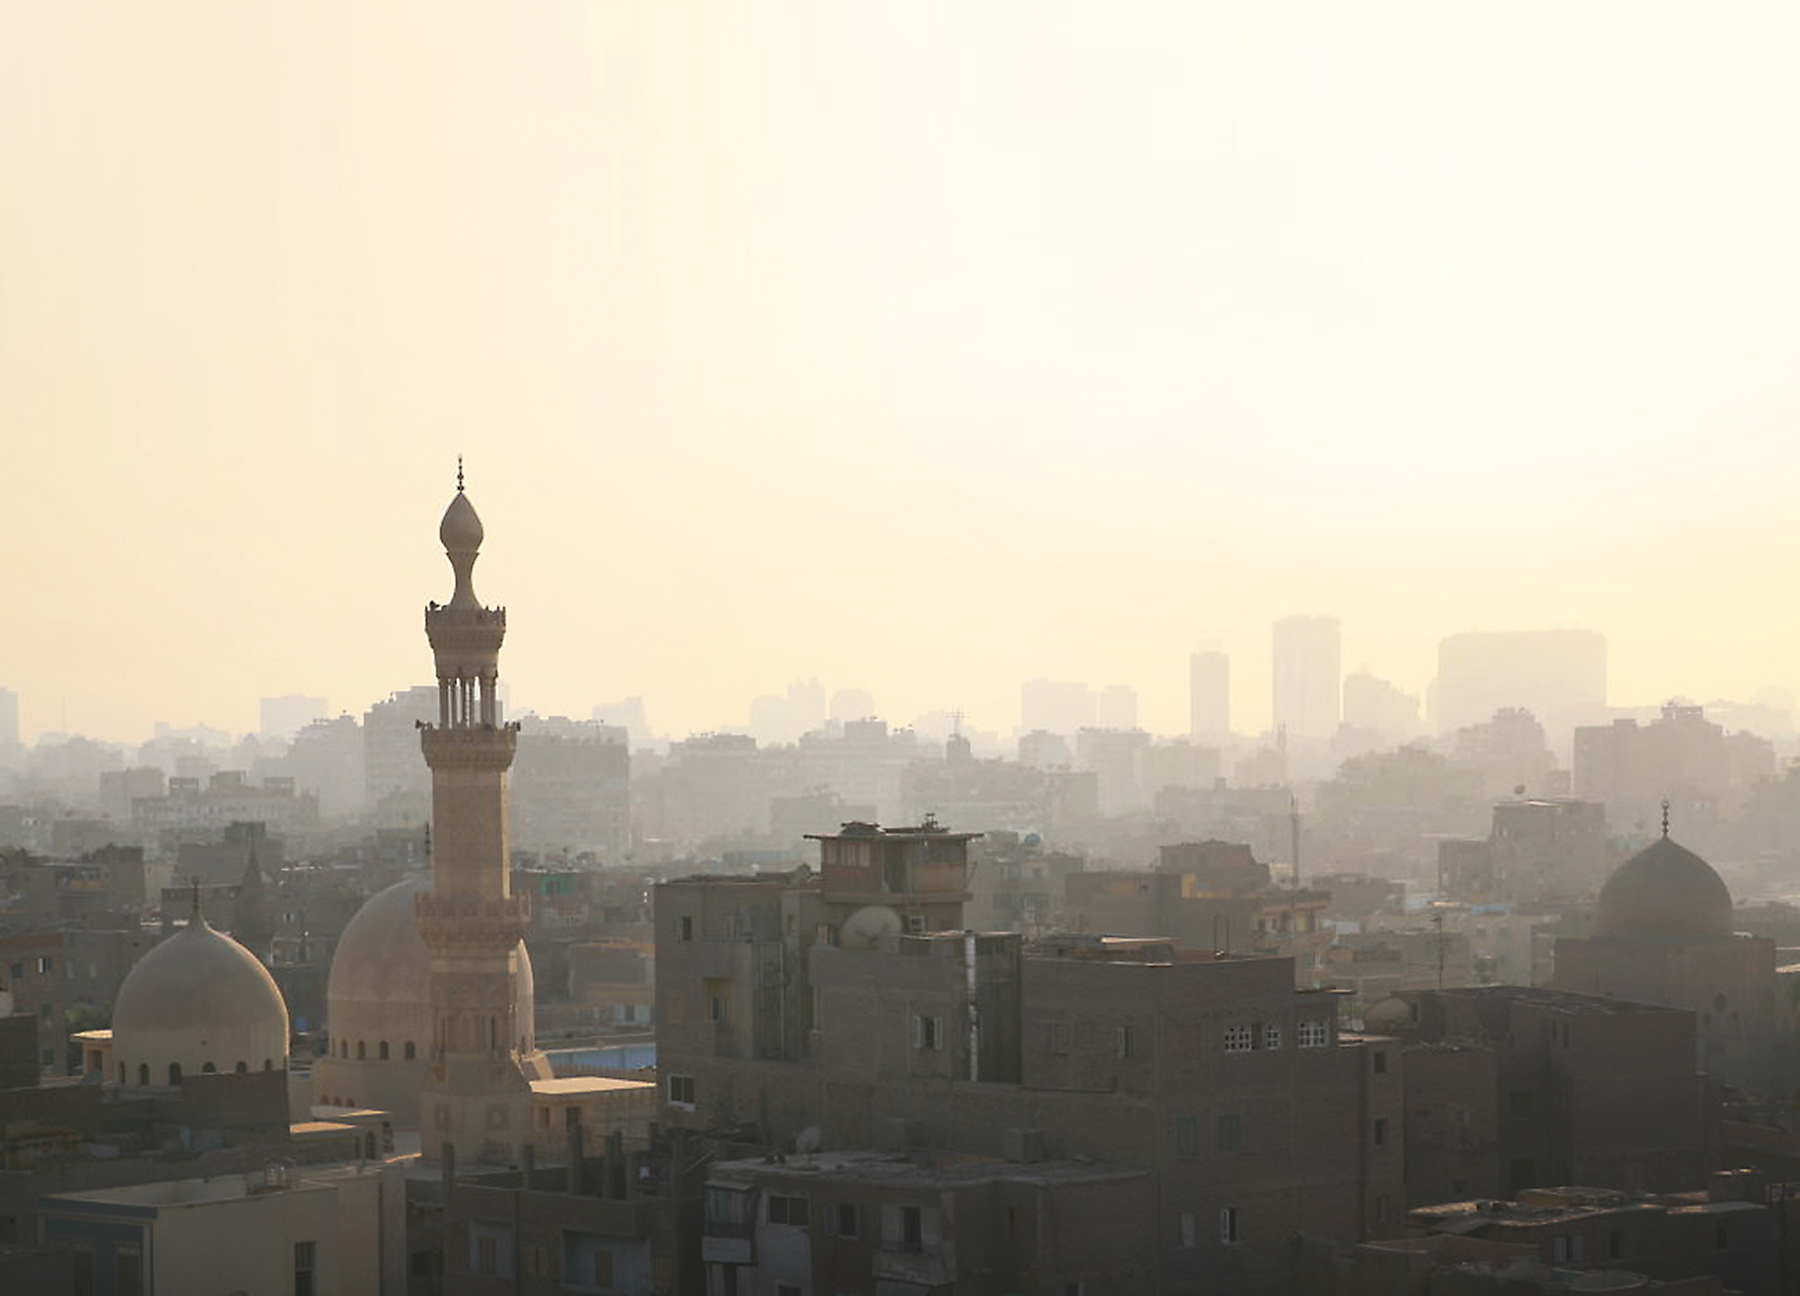 View over a foggy Cairo city with a mosque's domes and minaret in the foreground